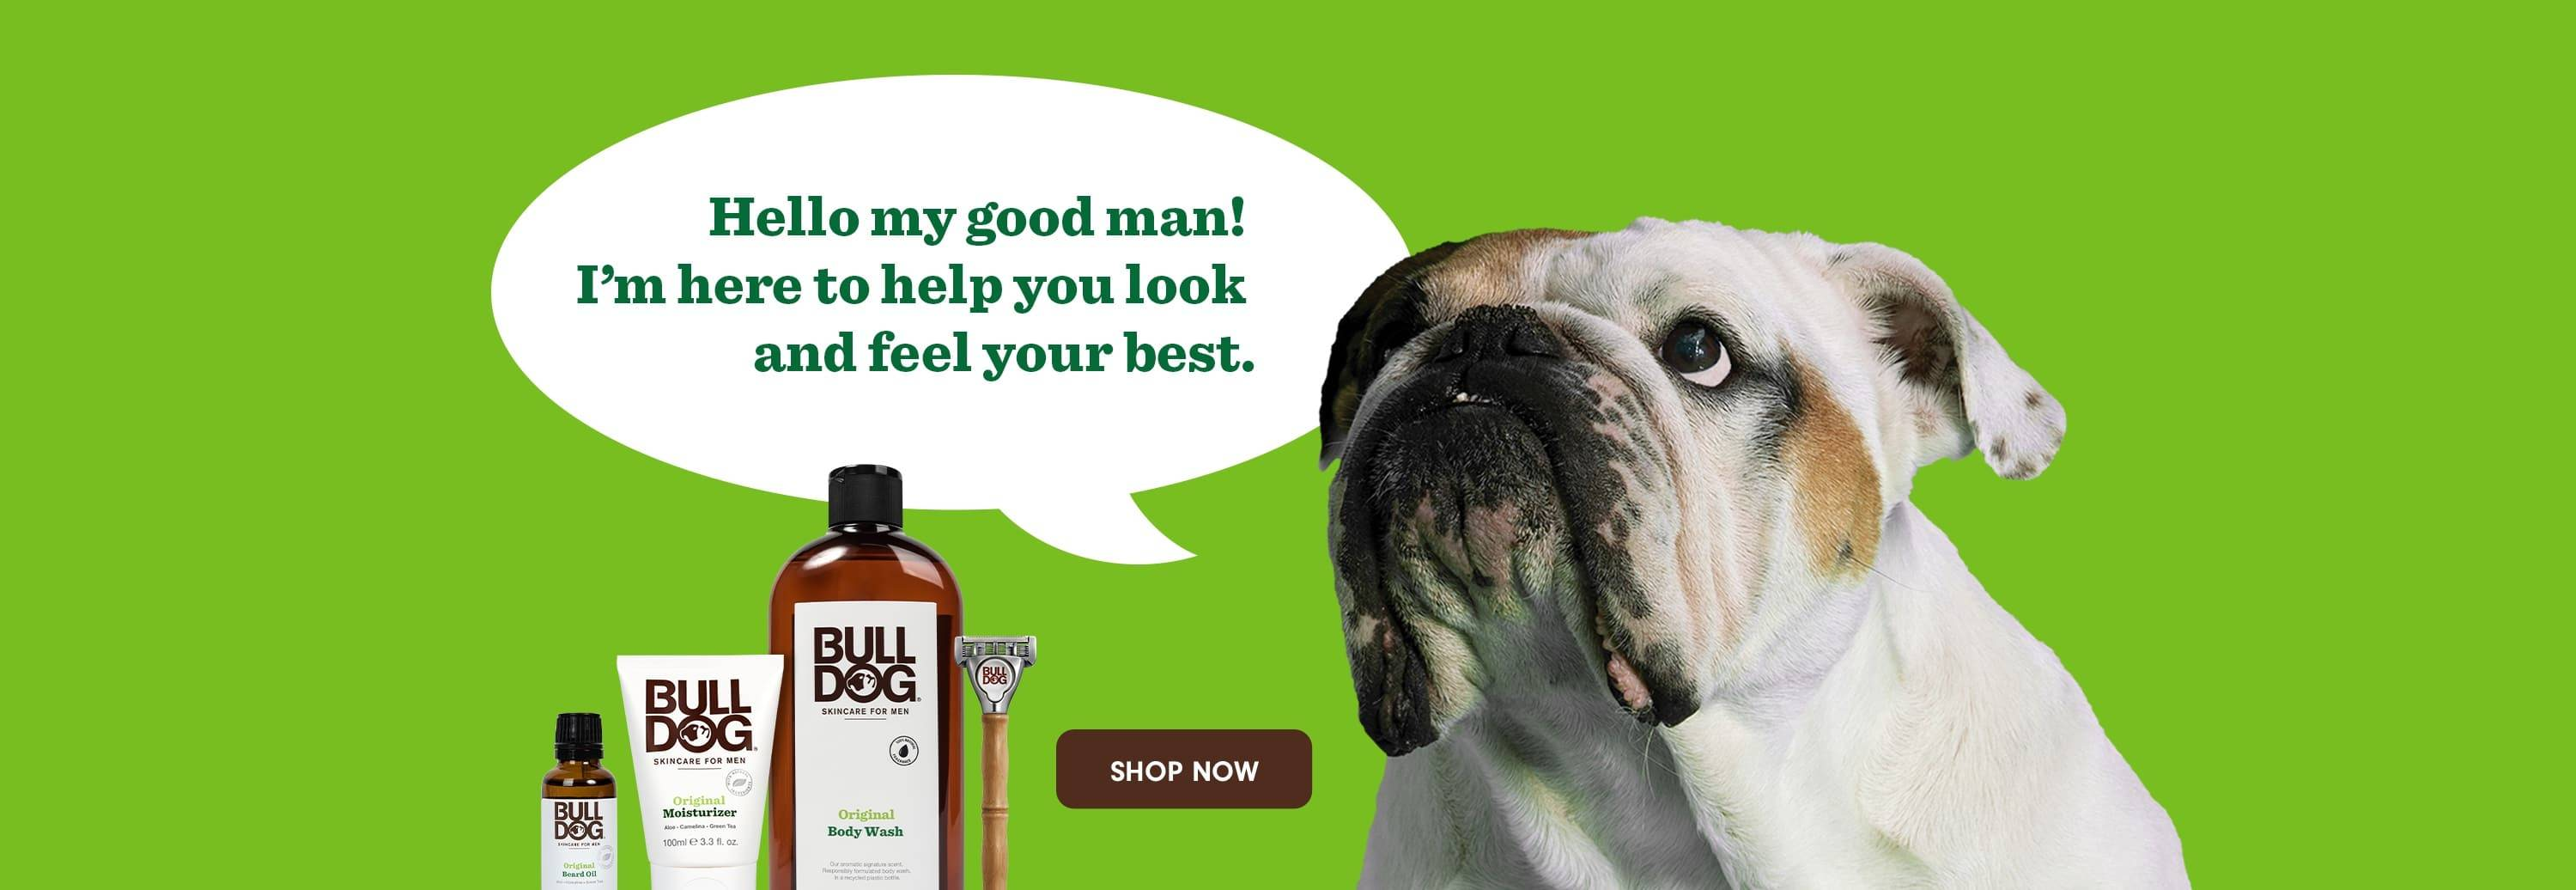 Hello my good man! I'm here to help you look and feel your best. Shop now.